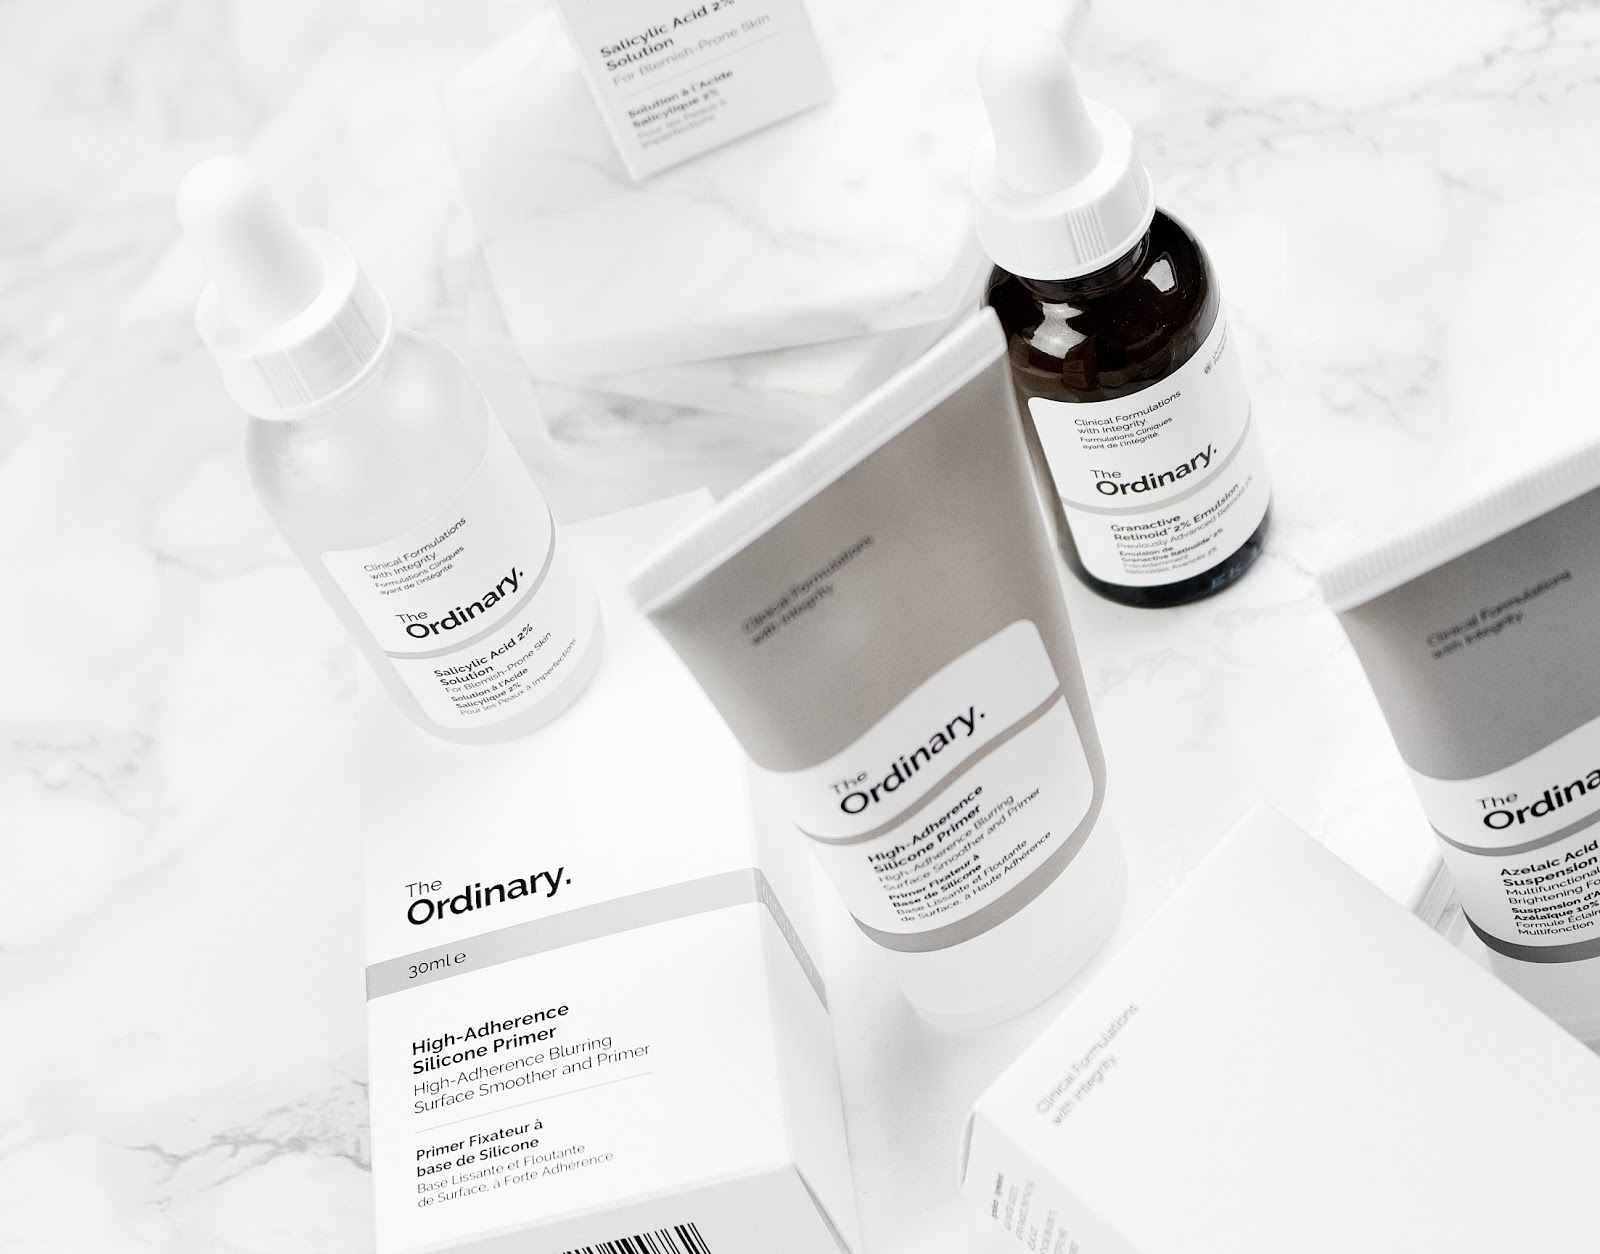 The Ordinary Skin Care Review